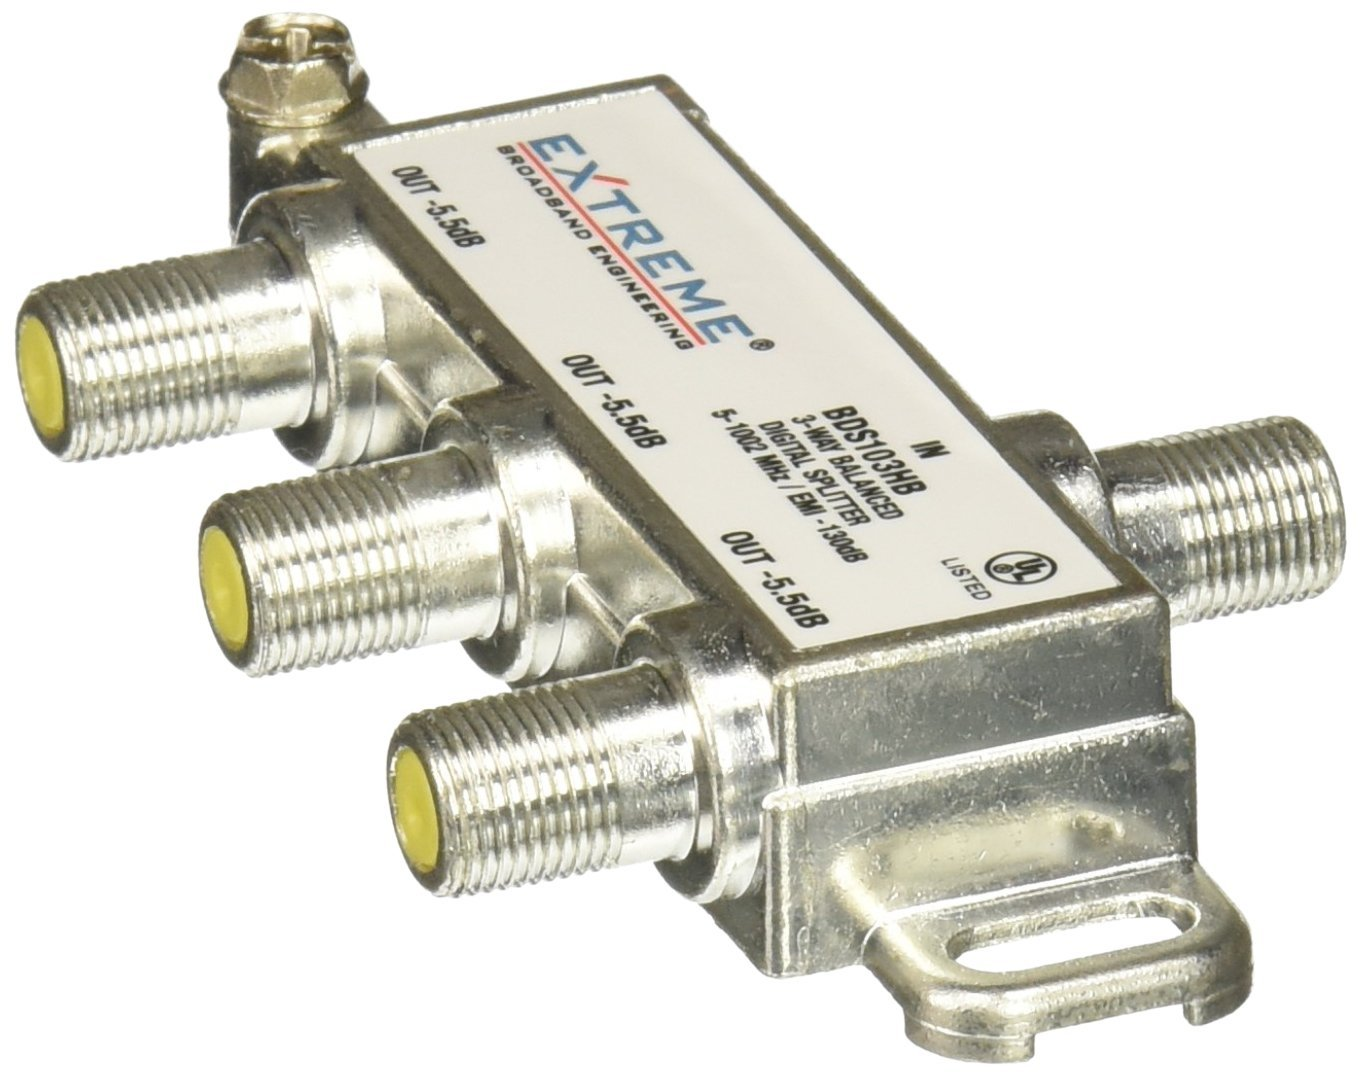 Best Cable Splitters : Best cable splitters things reports